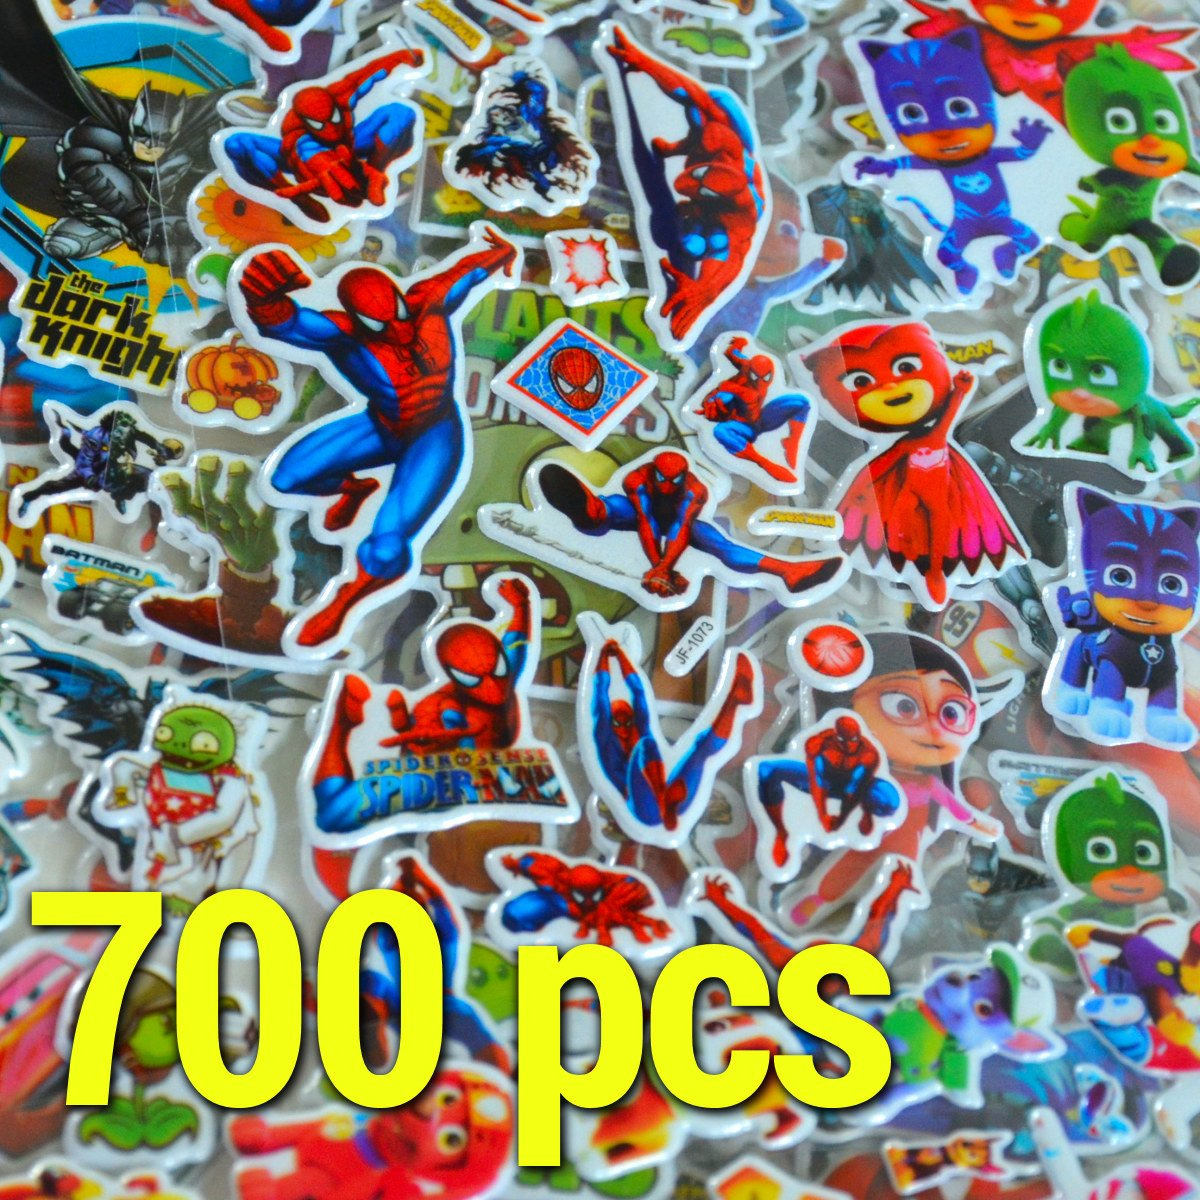 ¡Más de 700 pegatinas! 40 hojas Superhéroes 3D Conjunto de pegatinas Superhéroe: Paw Patrol, Spiderman, Batman, Superman, Cars, Turtles, Plants vs Zombies, Aviones King Mungo - KMST005 KingMungo